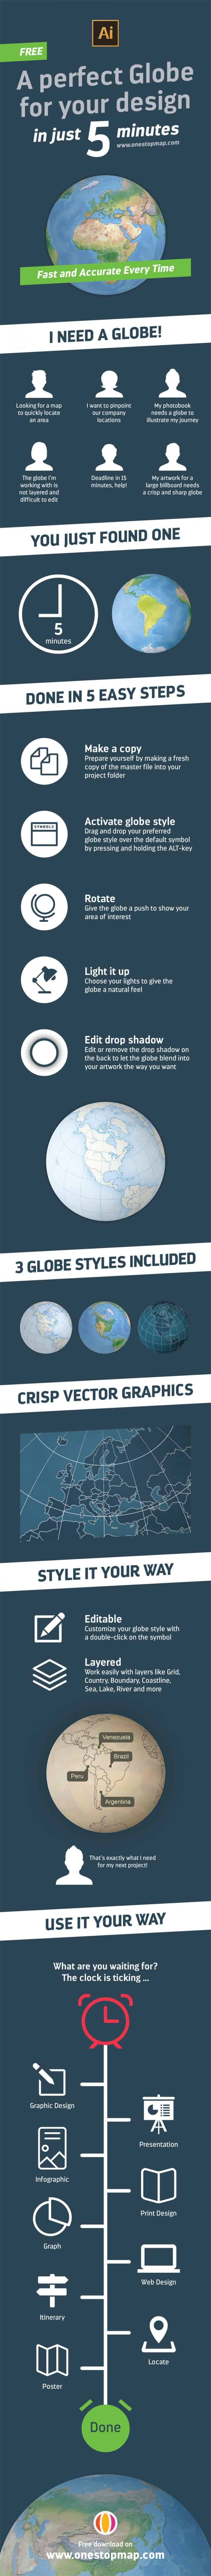 A Perfect Globe For Your Design Infographic